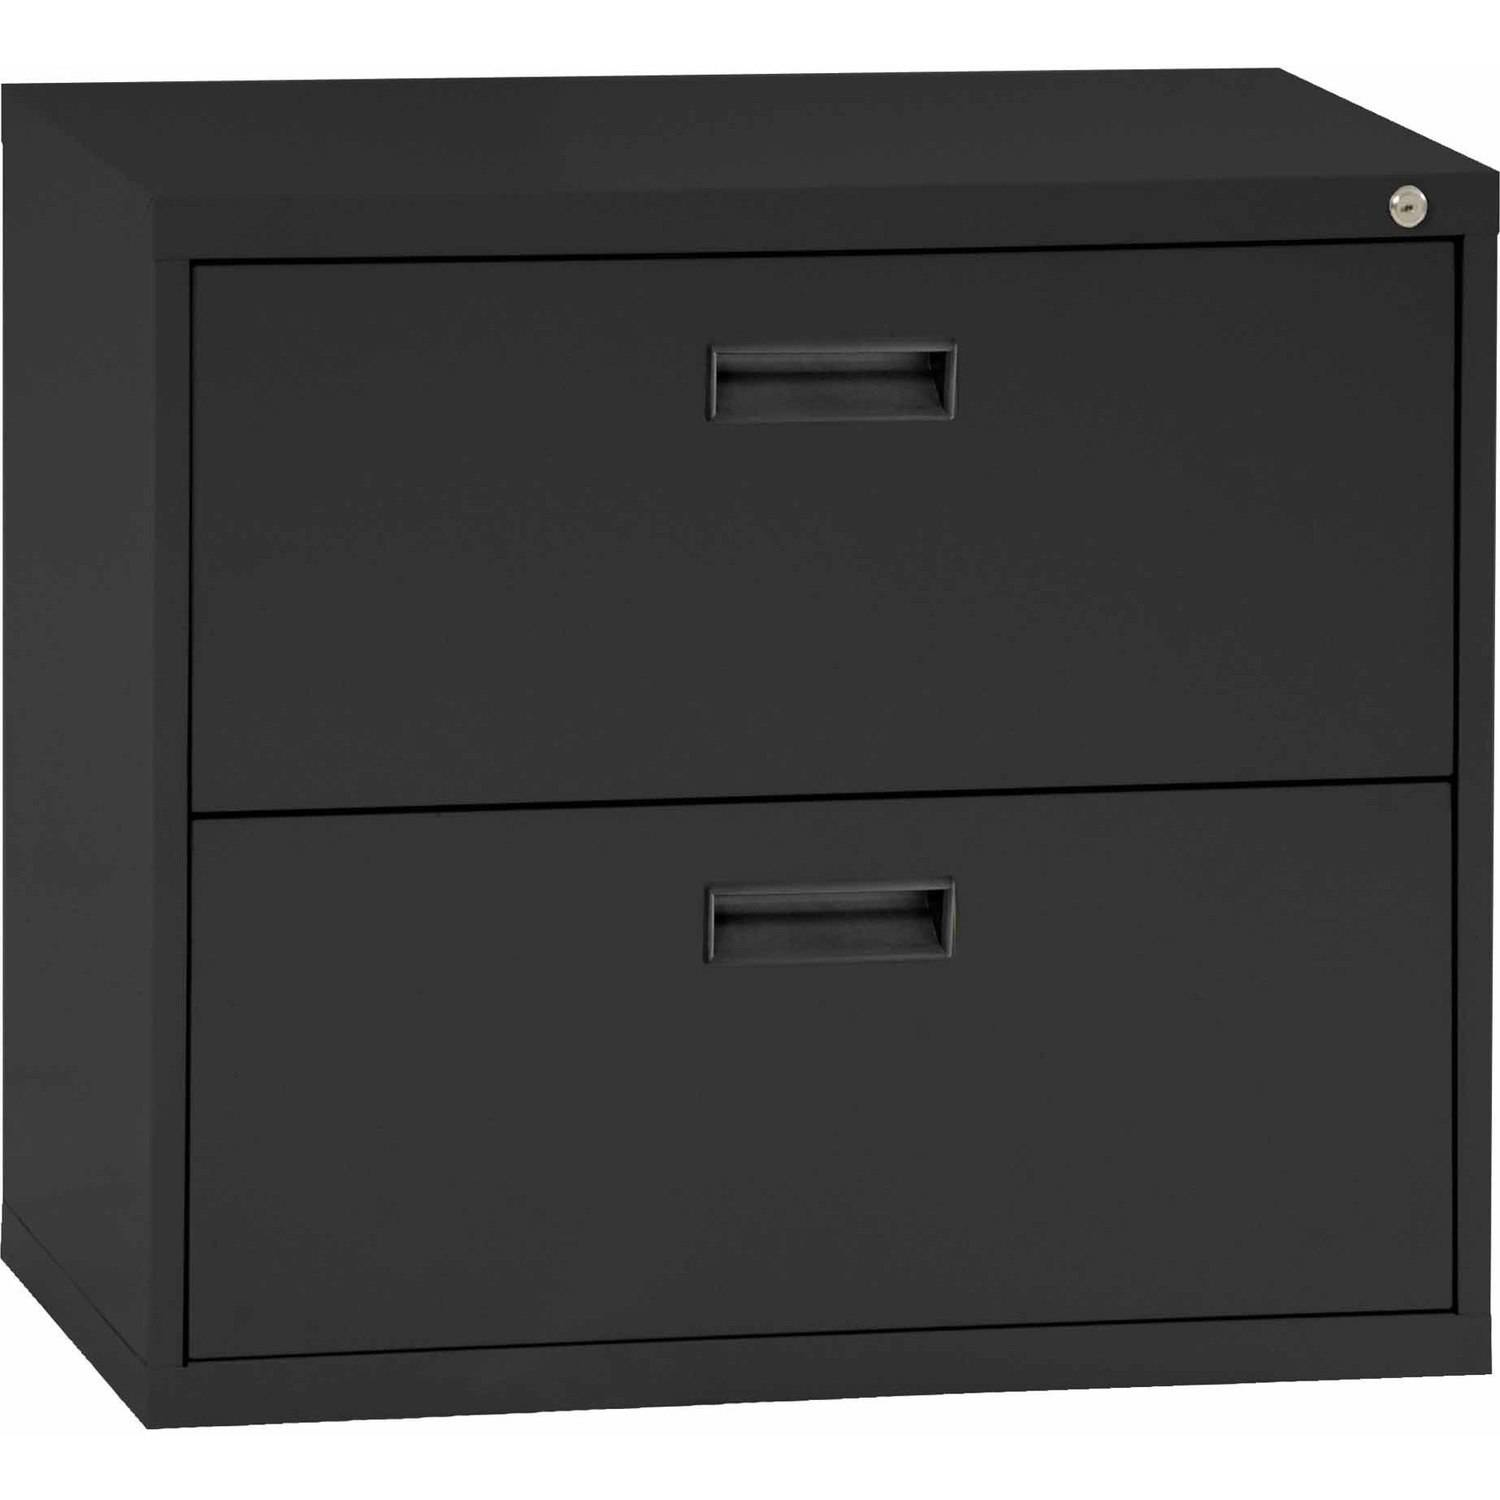 Sandusky Steel Lateral File Cabinet with Plastic Handle 2